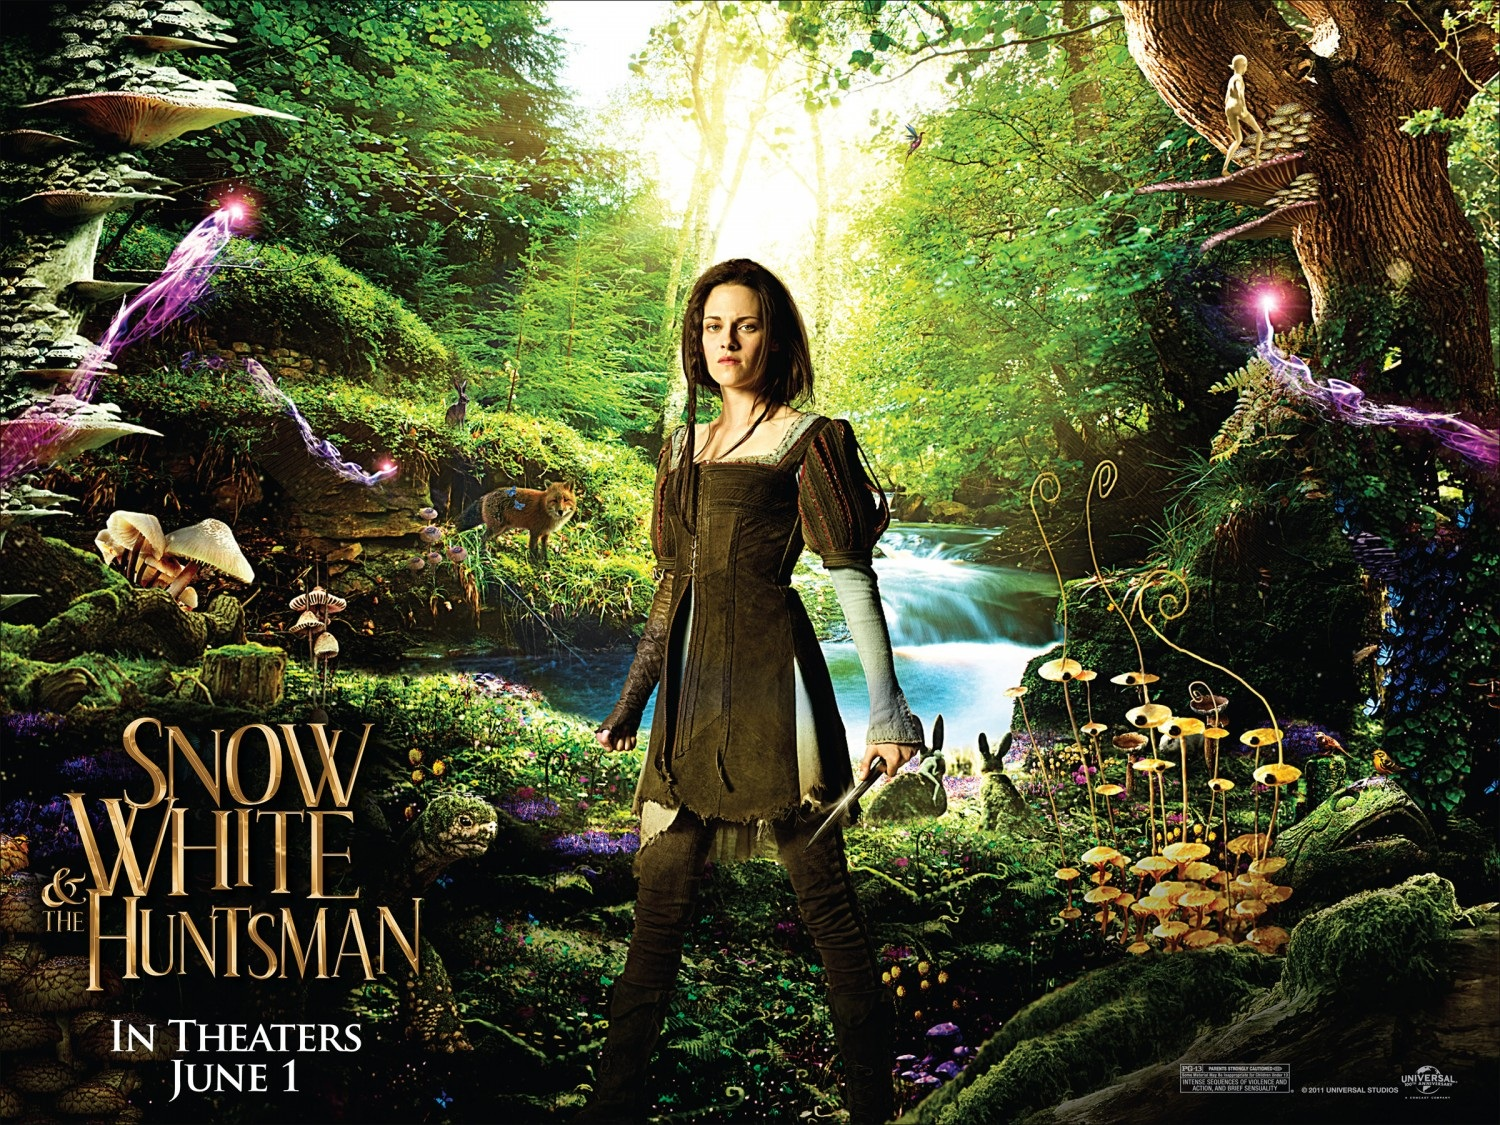 Snow White And The Huntsman 2 Poster Snow White And The Huntsman hd